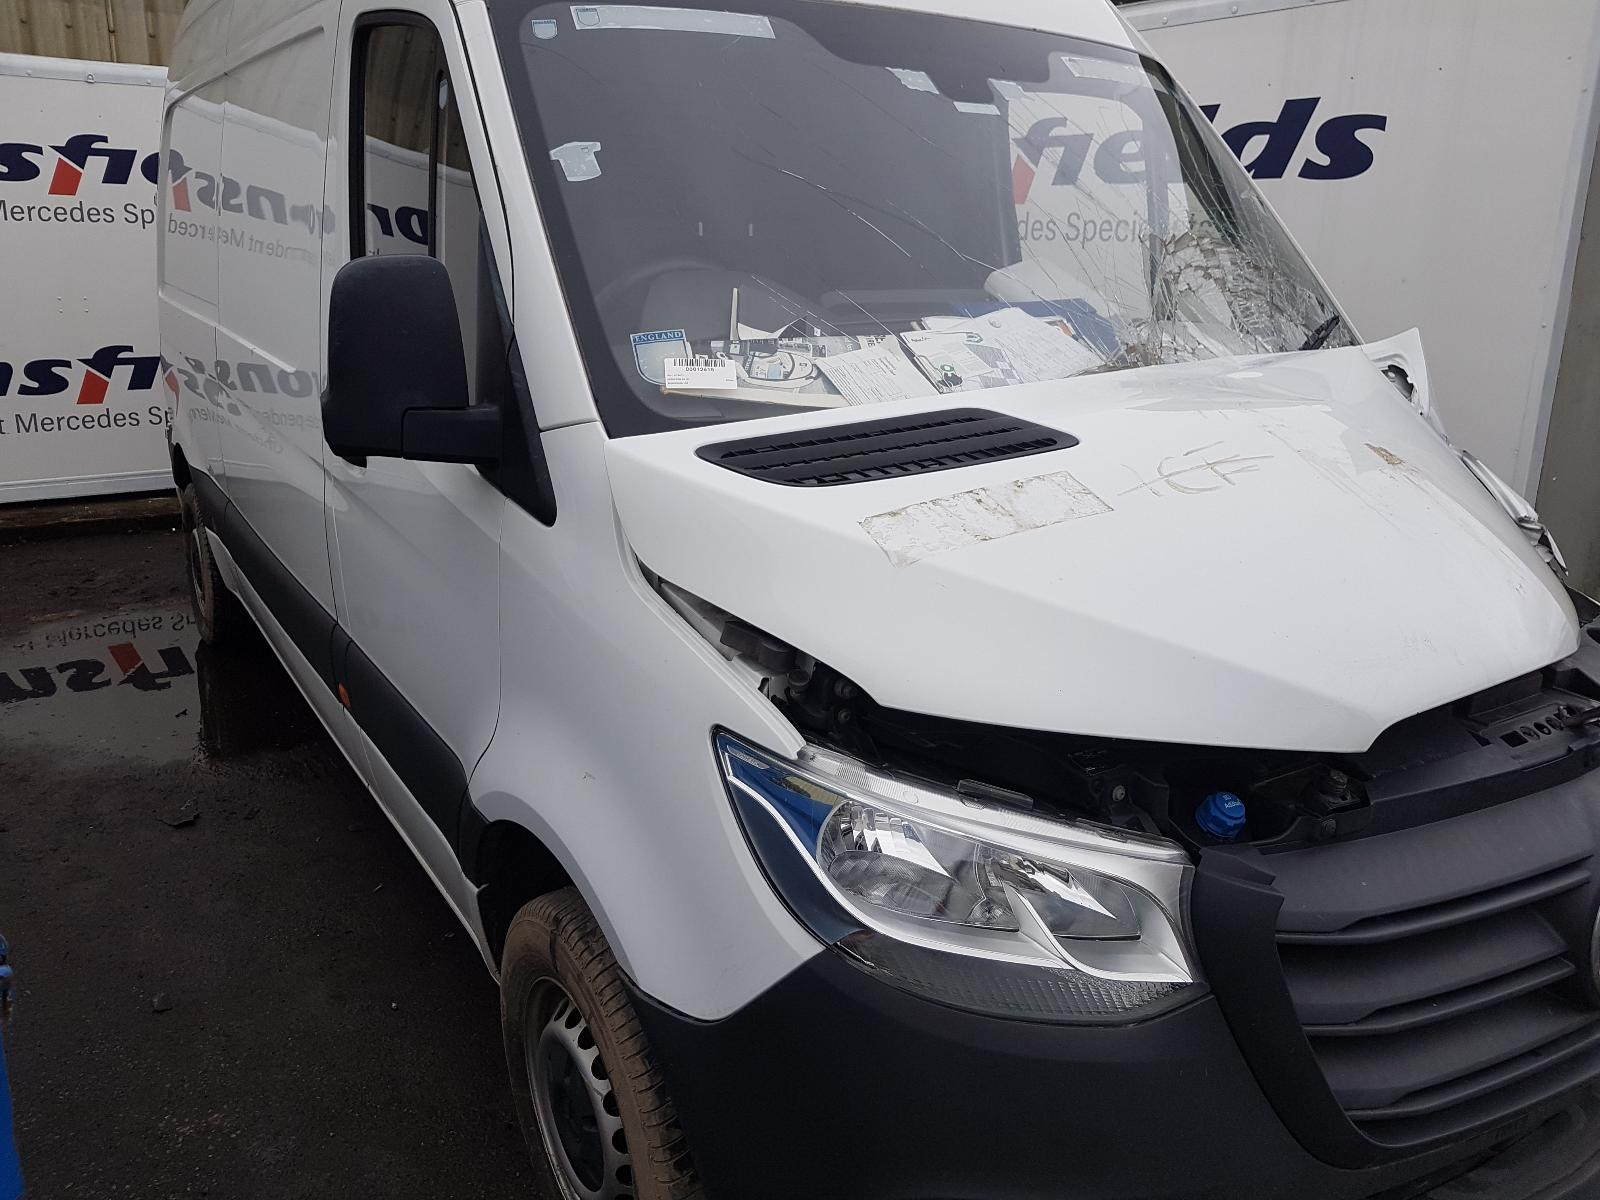 View Auto part Fuel Filler Flap Mercedes Sprinter 2019